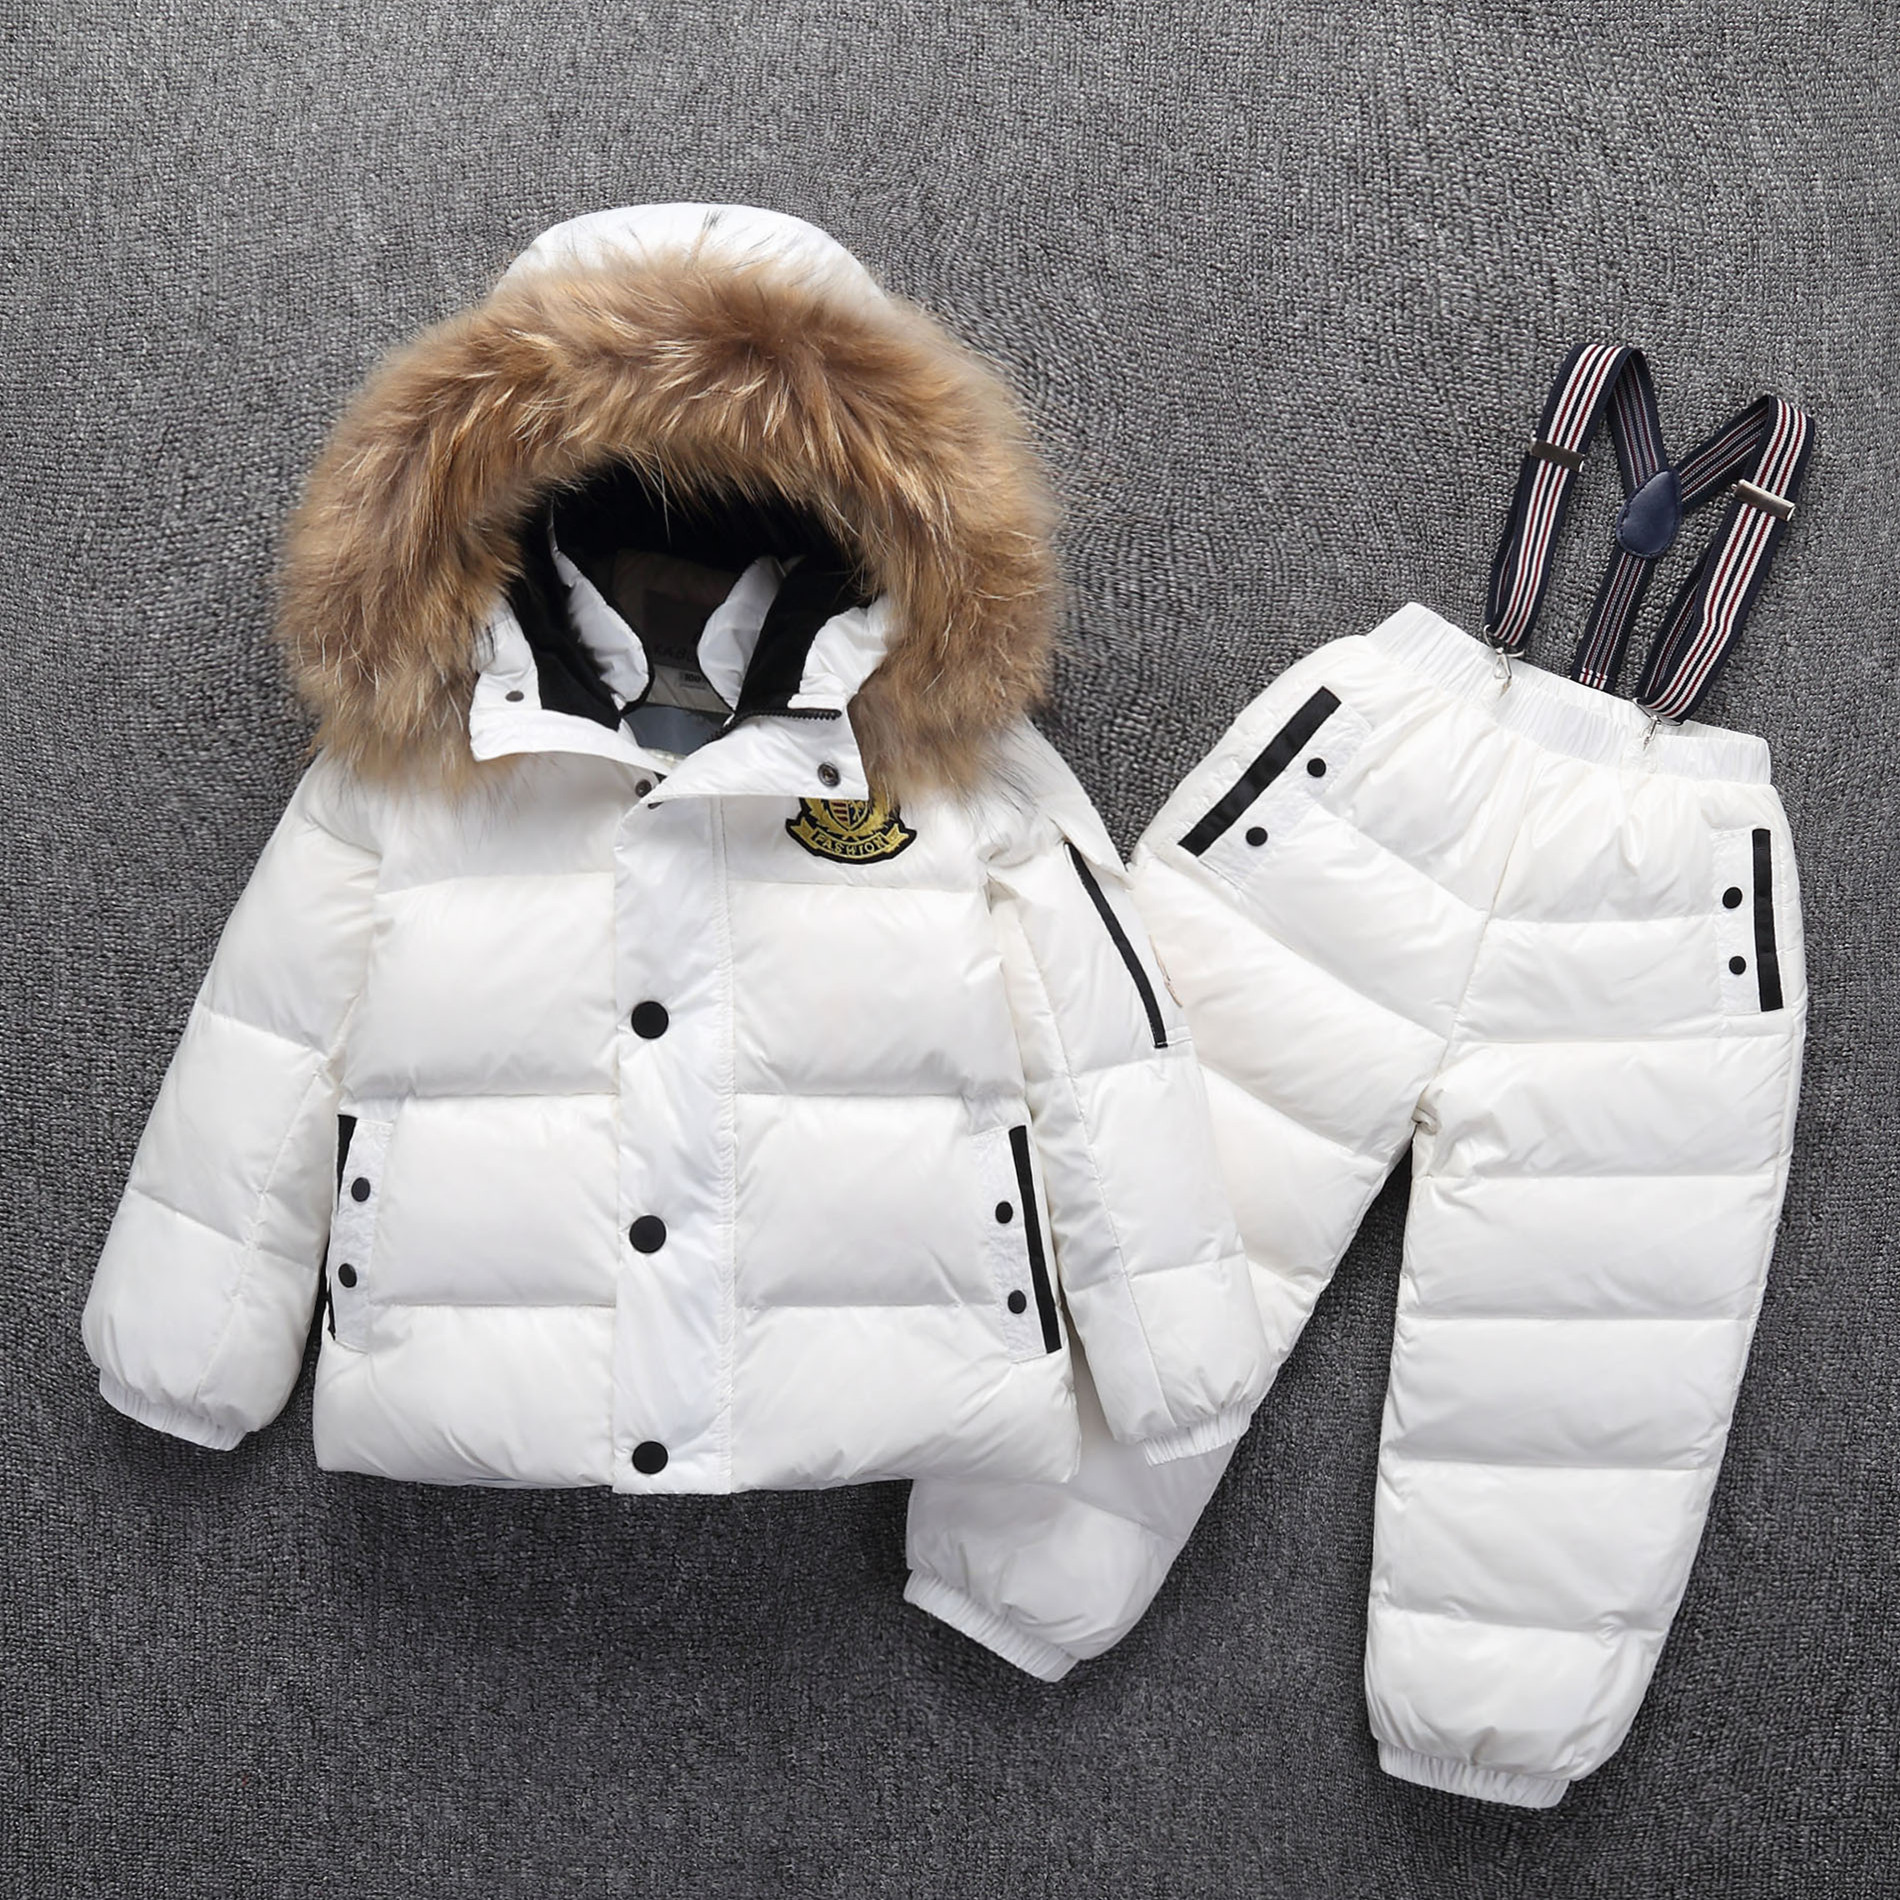 e1f99e92c 30 Degree Russian Warm Children Winter Suits Boys Girl Duck Down Jacket  +Pants Clothing Sets Kids Clothes Snow Wear Top Quality